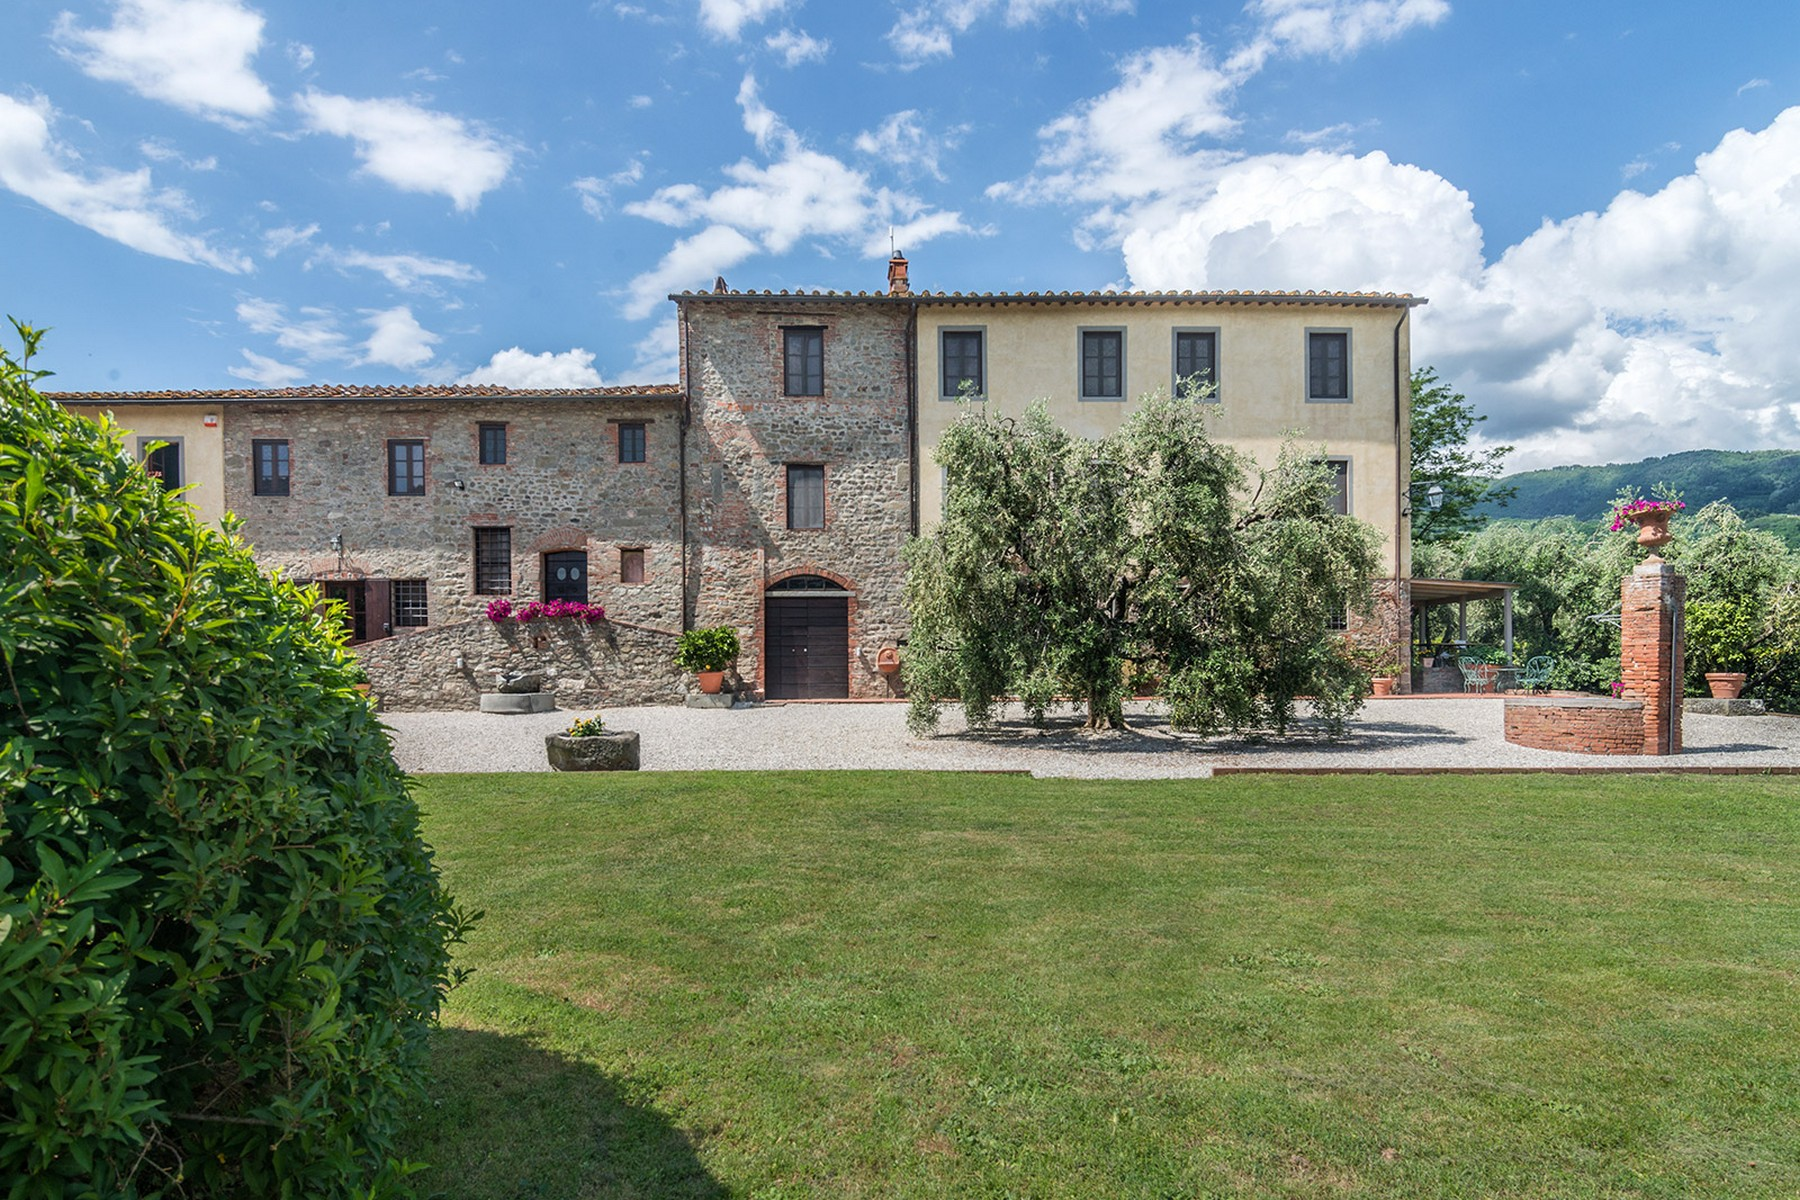 Single Family Home for Sale at Tuscan estate near Lucca with land Camigliano San Gemma Camigliano San Gemma, Lucca 55100 Italy